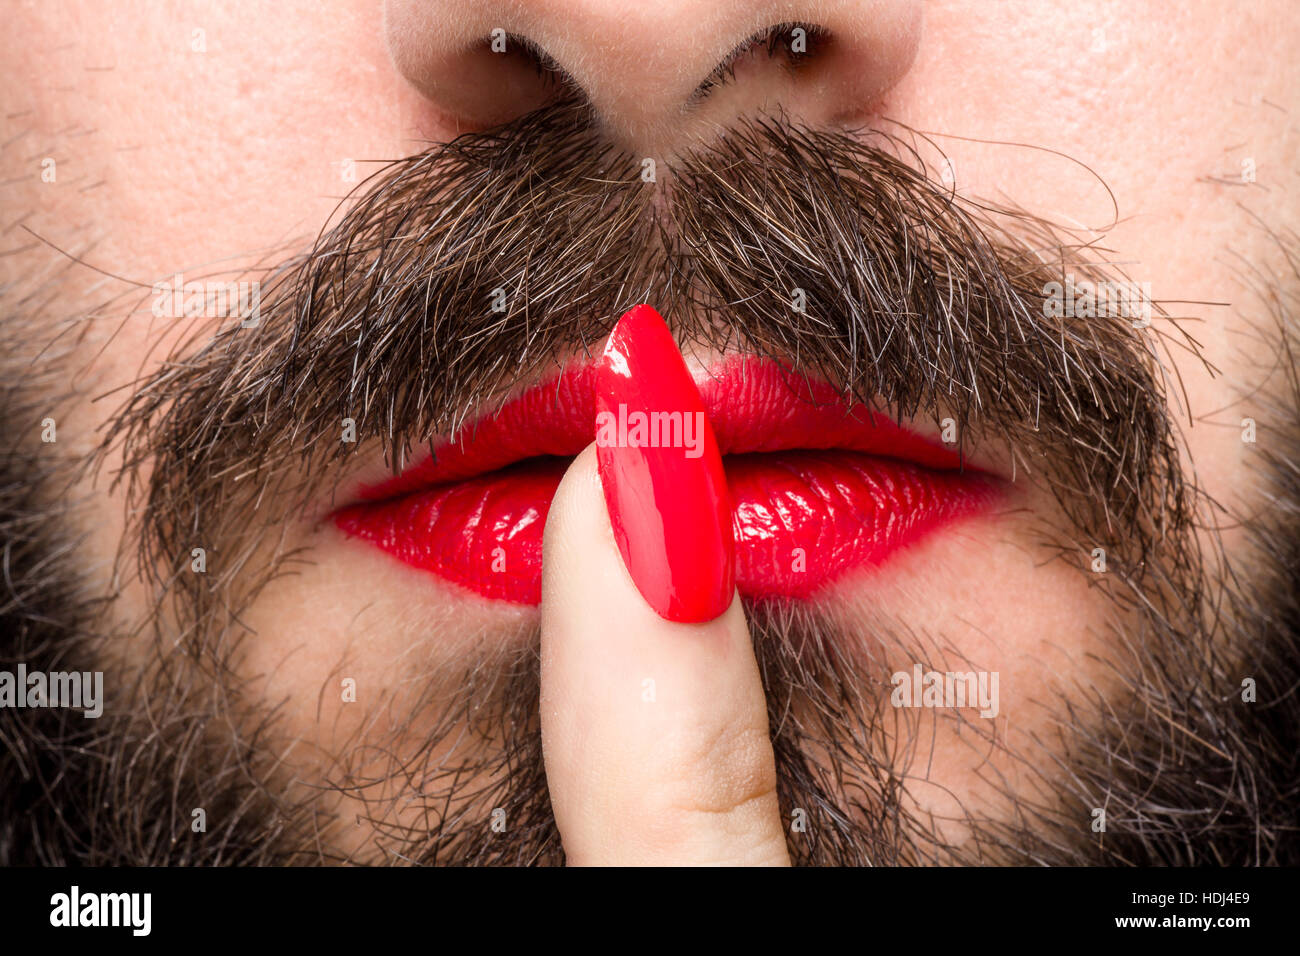 Man With Nail Polish Stock Photos & Man With Nail Polish Stock ...